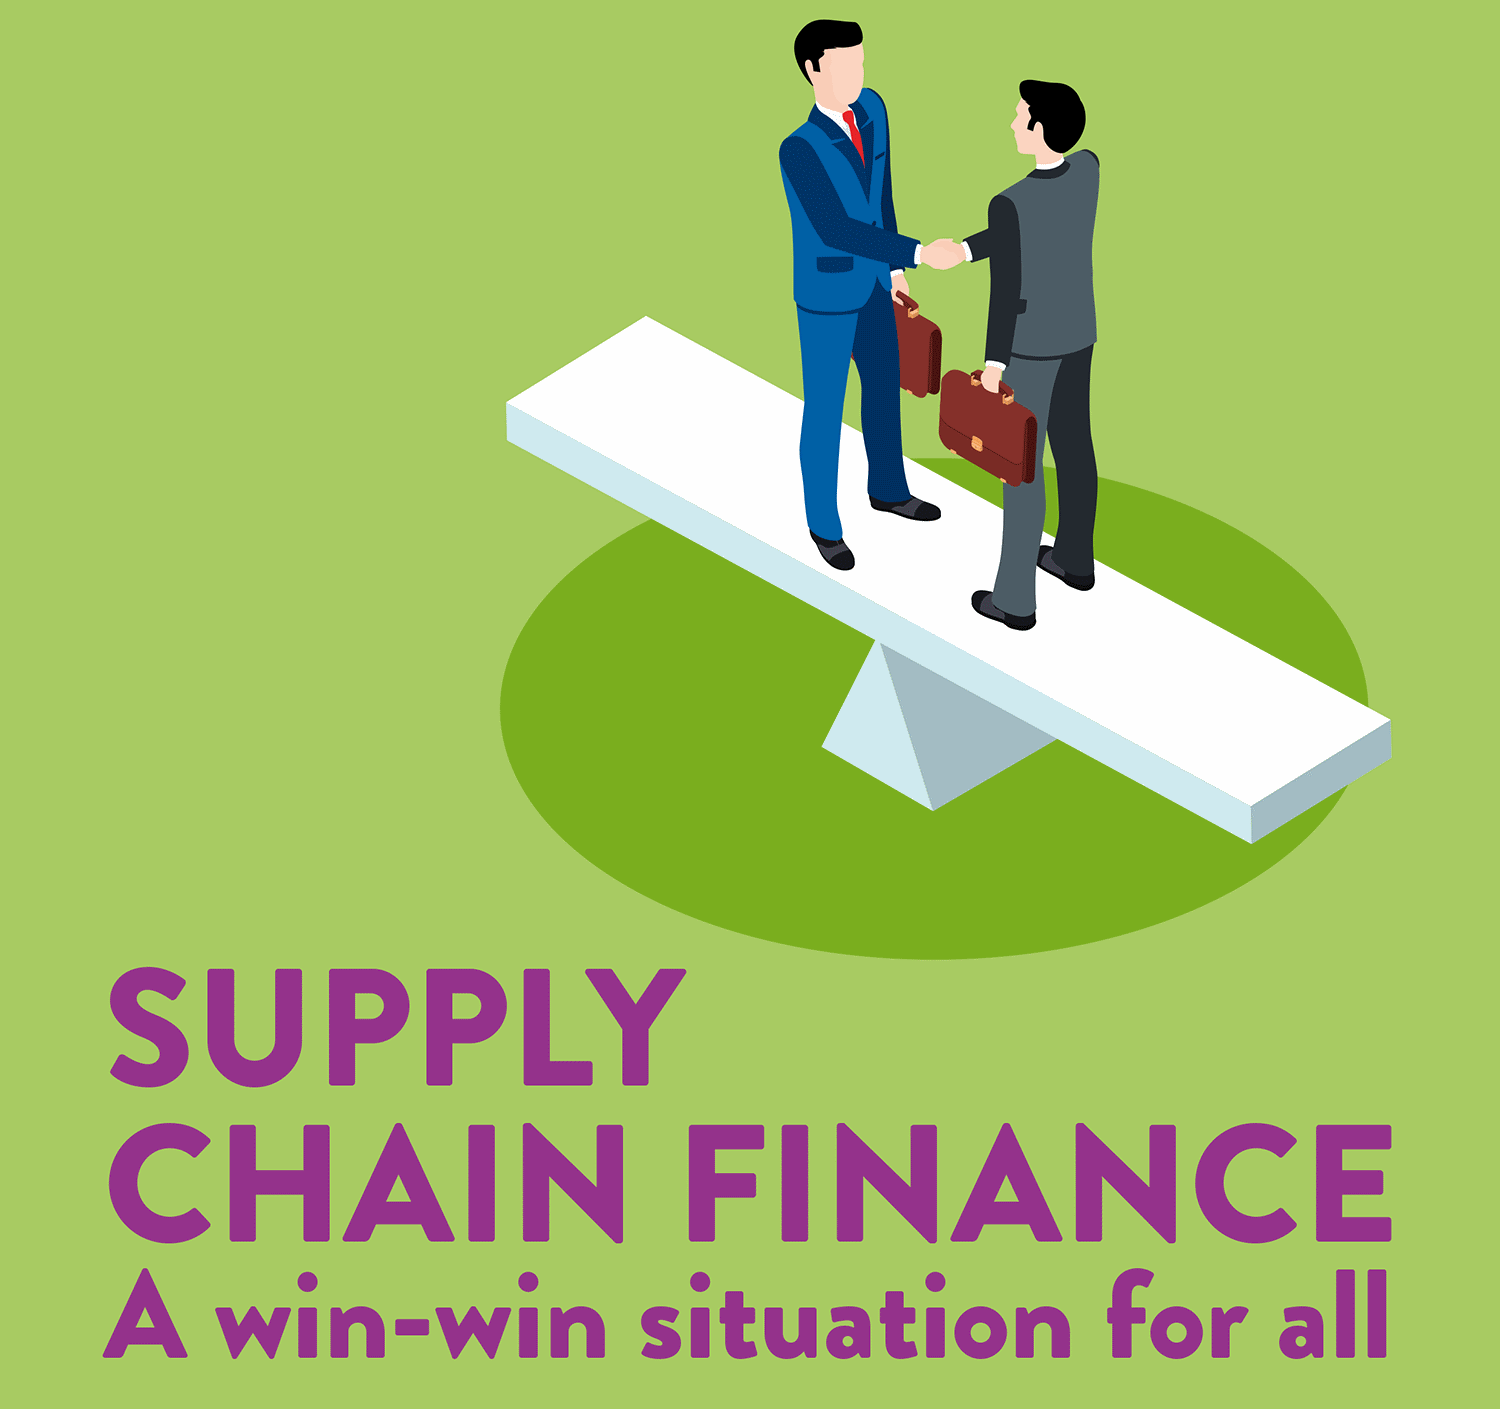 WIN-WIN-WIN - Everyone is a winner with supply chain finance 4